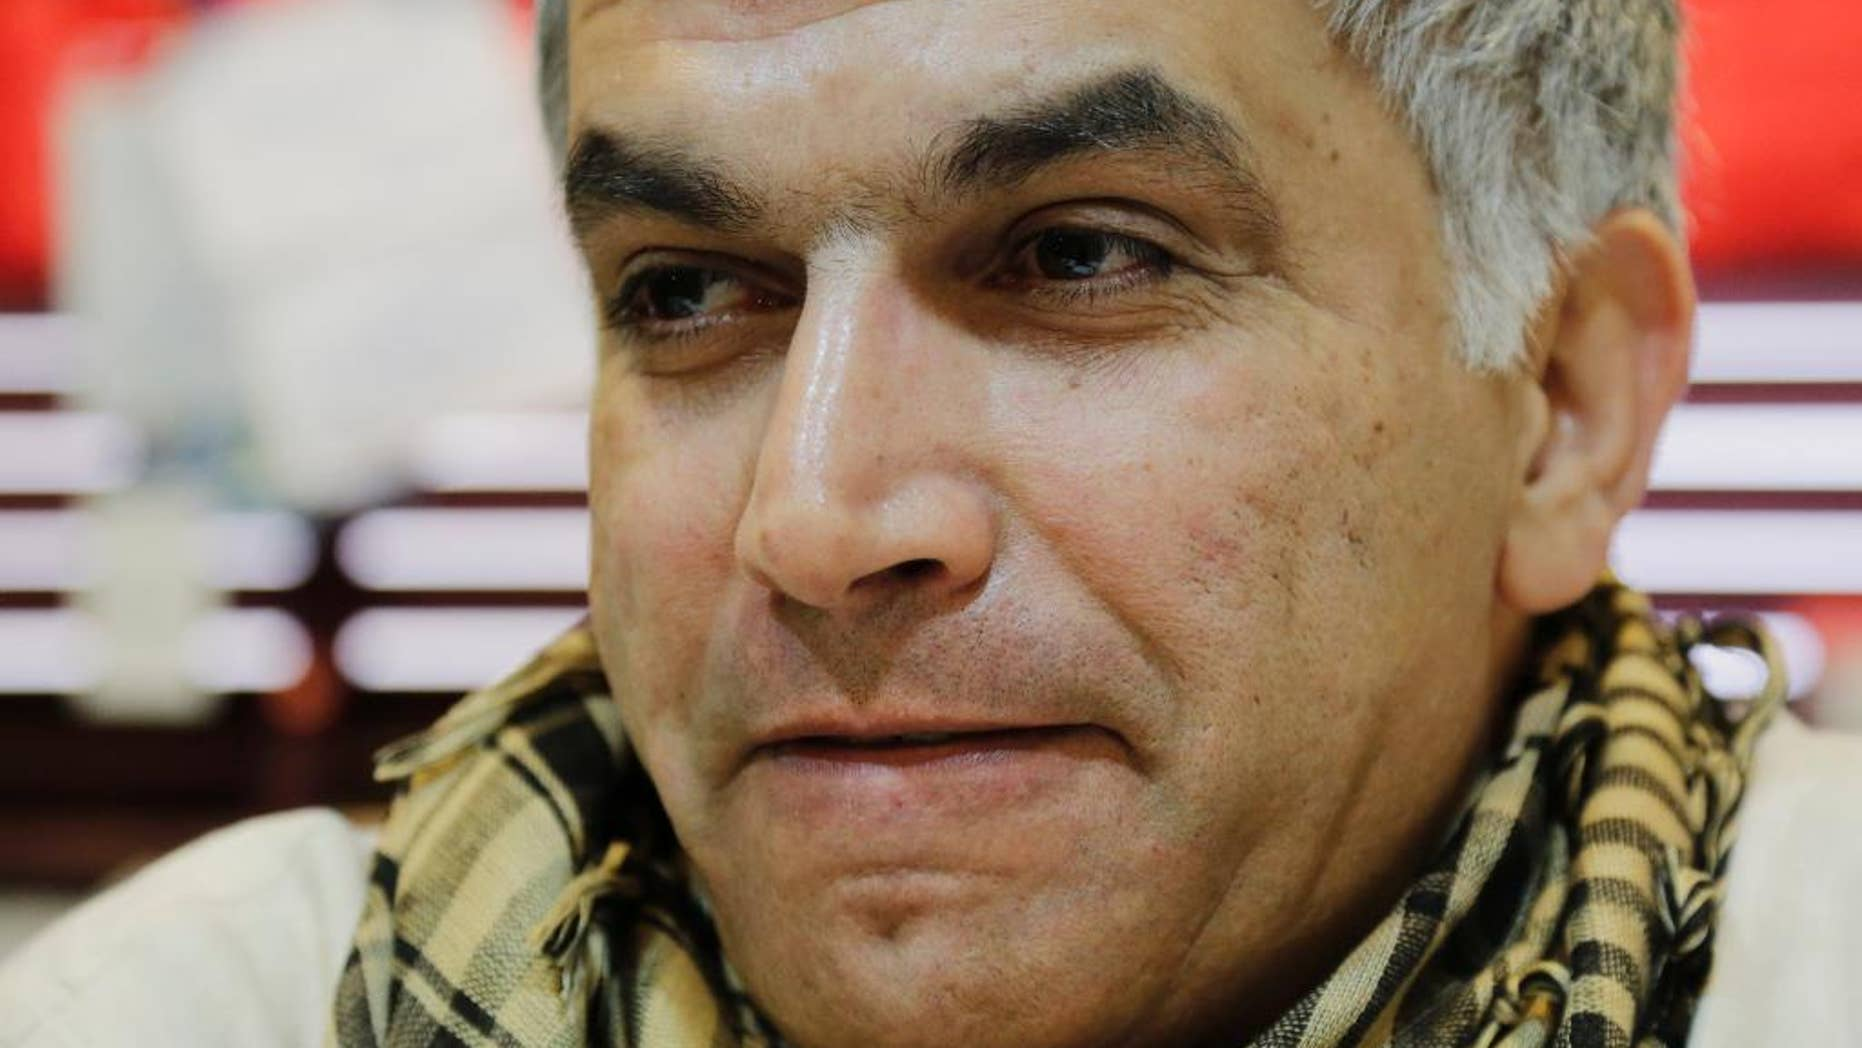 FILE - In this Tuesday, Jan. 20, 2015 file photo, Nabeel Rajab, one of Bahrain's best-known human rights activists, talks to The Associated Press during an interview hours before his conviction in Bani Jamra, Bahrain. A lawyer for Rajab said Thursday, May 14, that an appeals court has upheld a verdict against Rajab for insulting government ministries on Twitter. (AP Photo/Hasan Jamali, File)